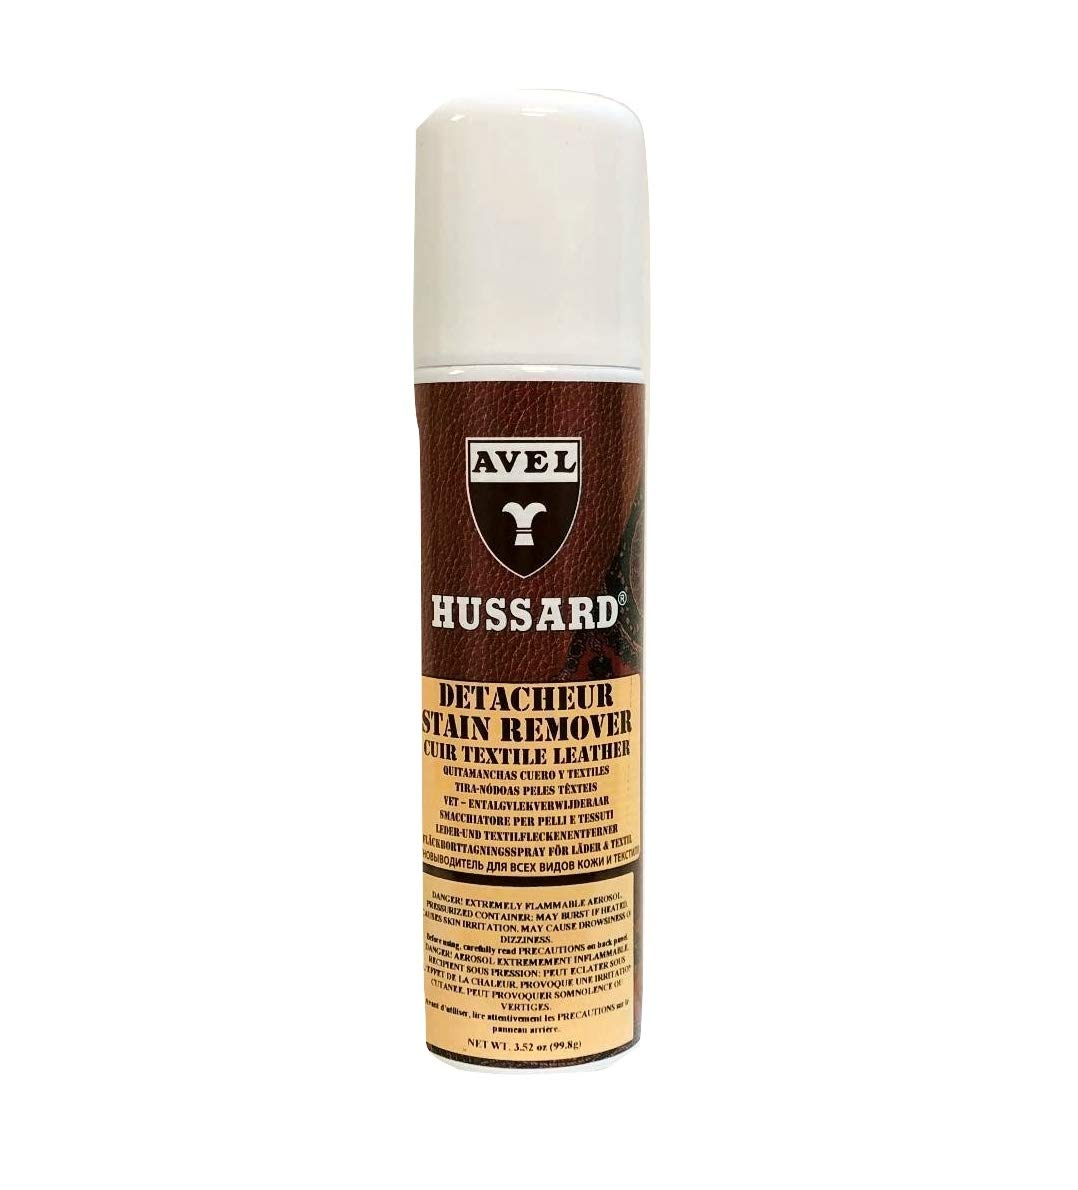 Avel Hussard Detacheur Stain Remover, 150ml Spray can by Avel